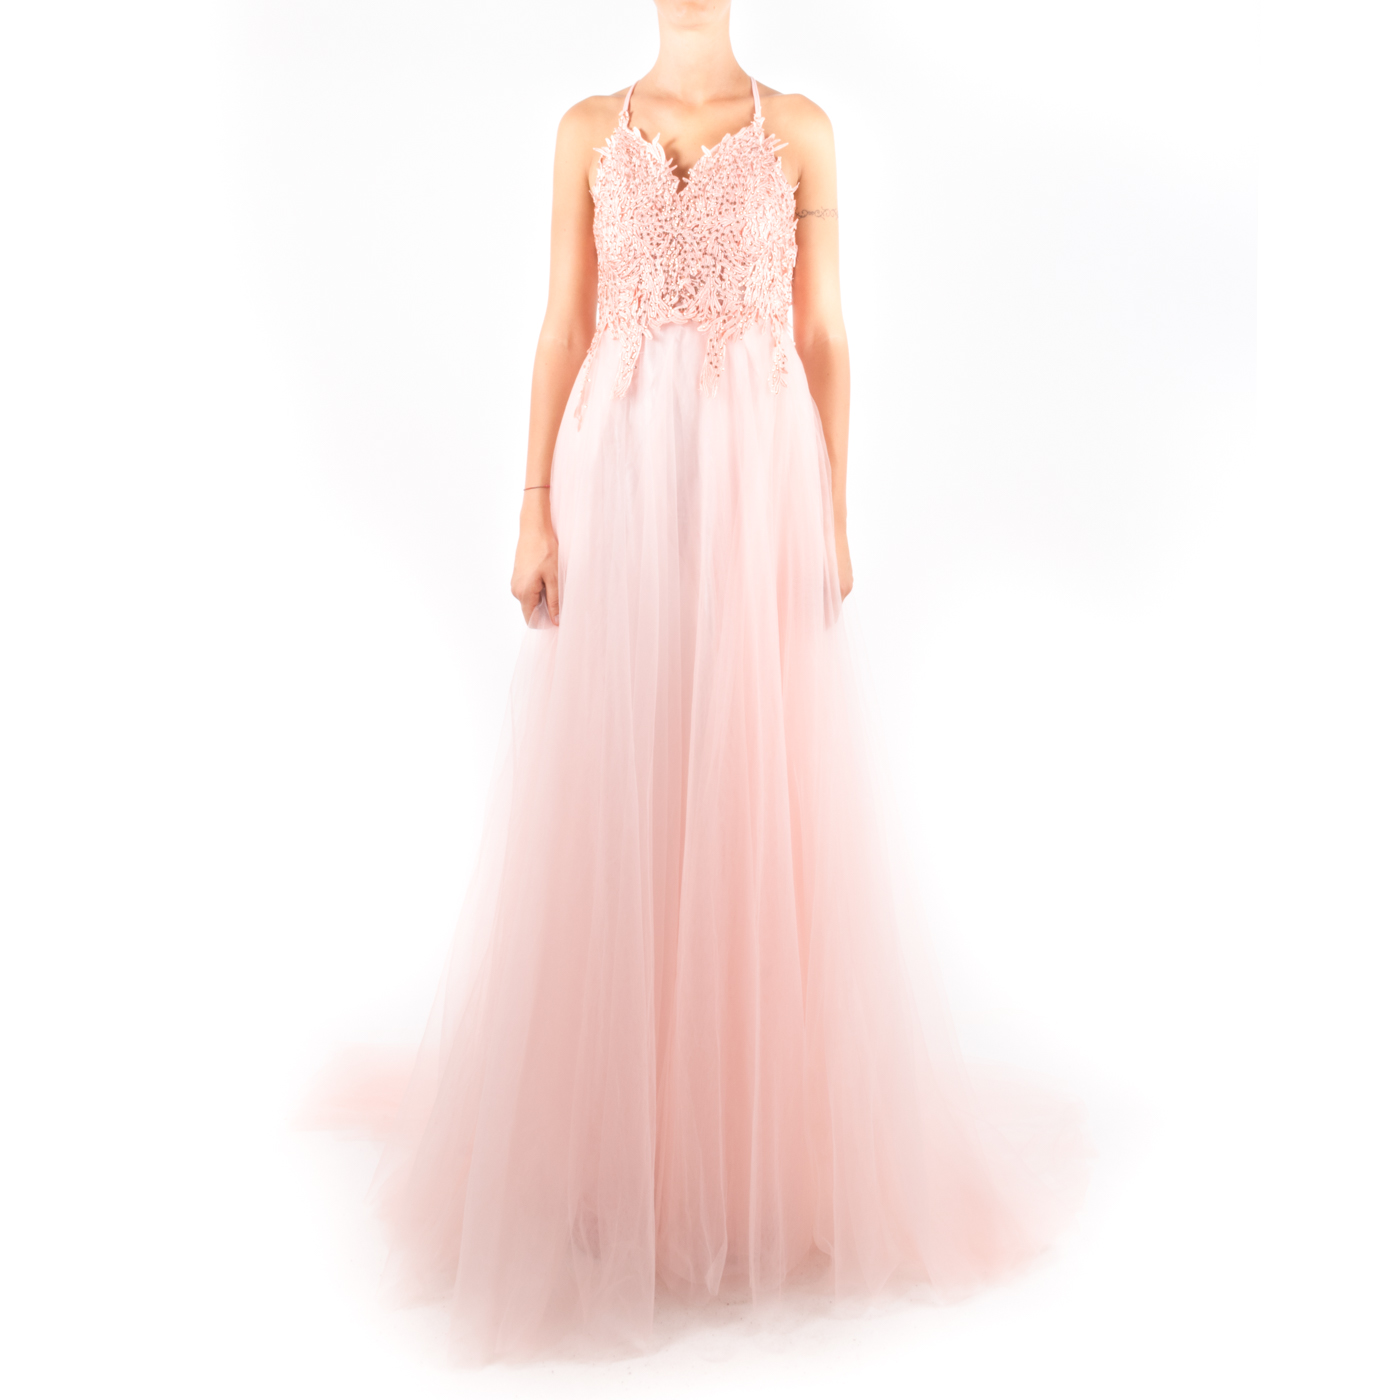 huge discount a43ed 23221 Phy - Vestito da cerimonia con gonna in tulle e corpetto con pizzo e  brillantini - Rosa, Bianco